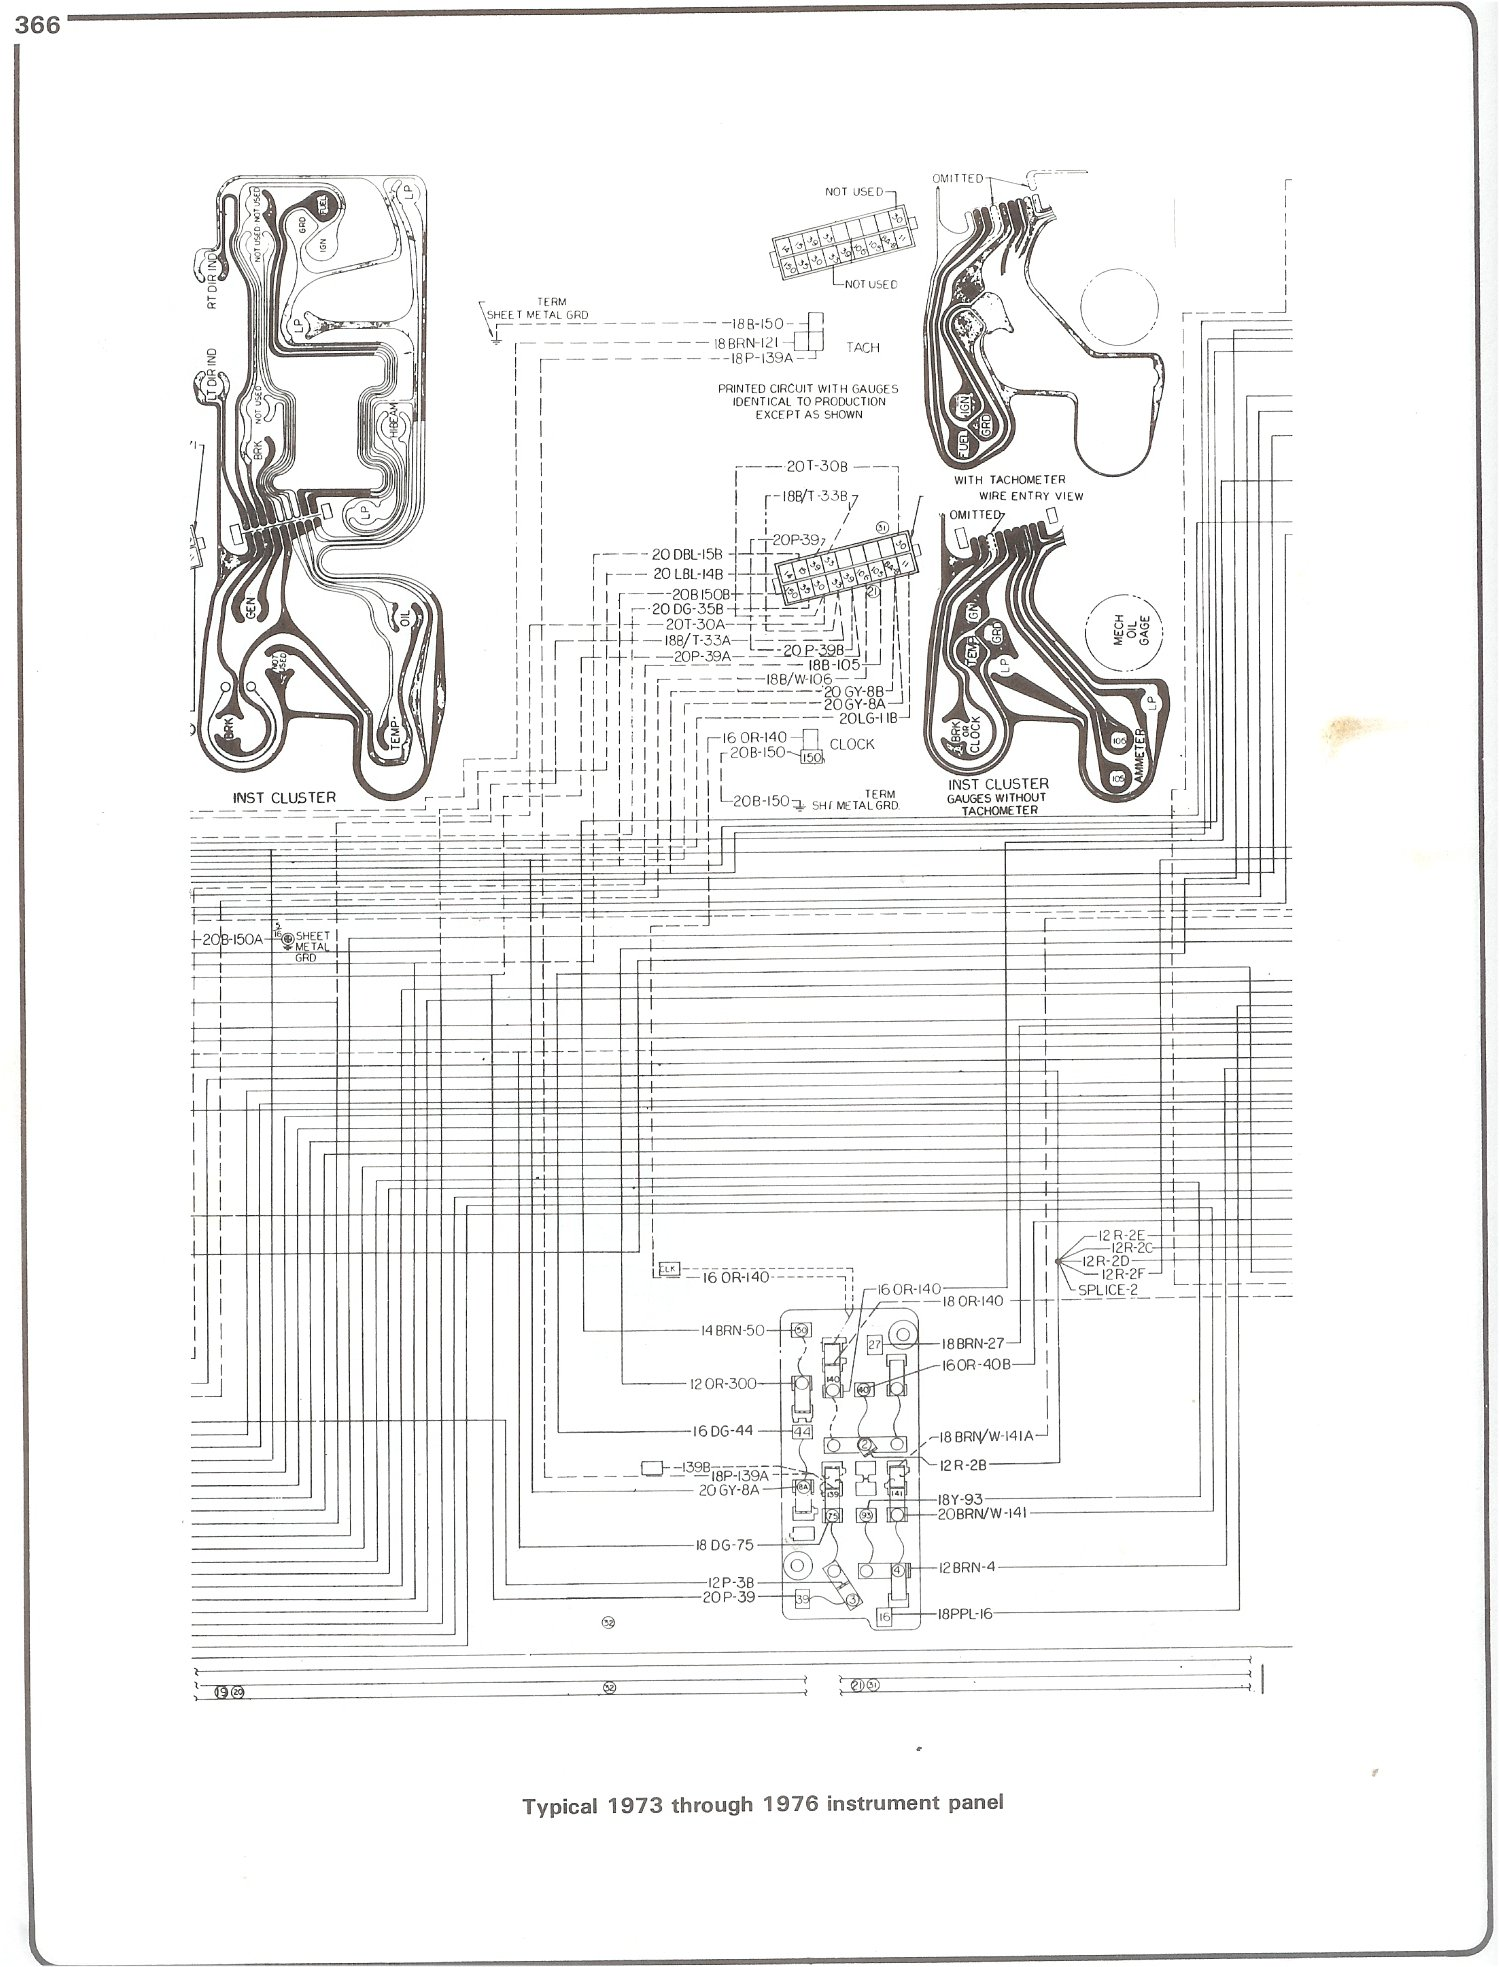 73 76_instrument complete 73 87 wiring diagrams Chevy Wiring Diagrams Color at edmiracle.co